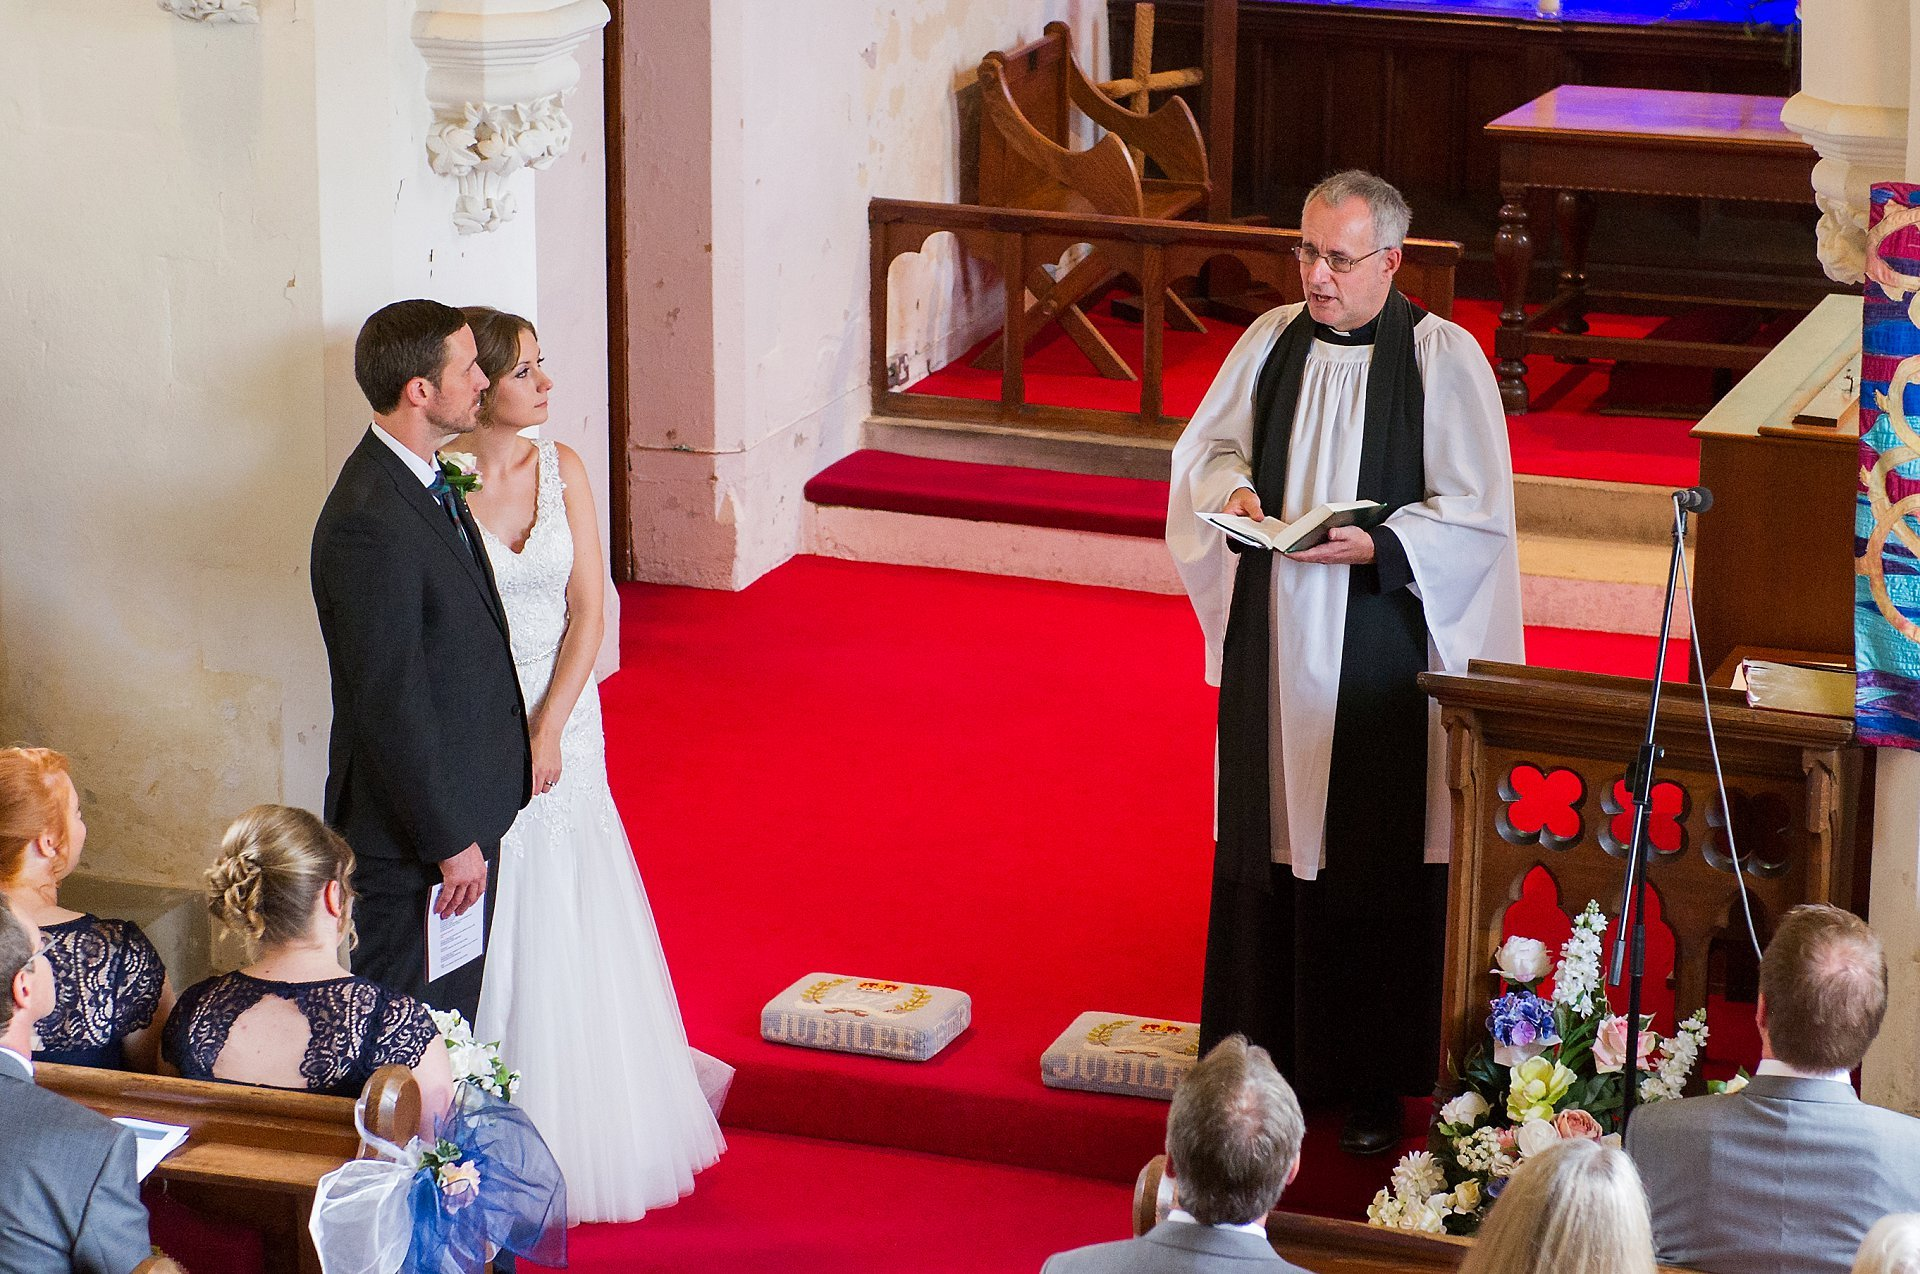 Ross Terranova at St Peter's Church Ditton delivers the homily during this marriage blessing service in Kent